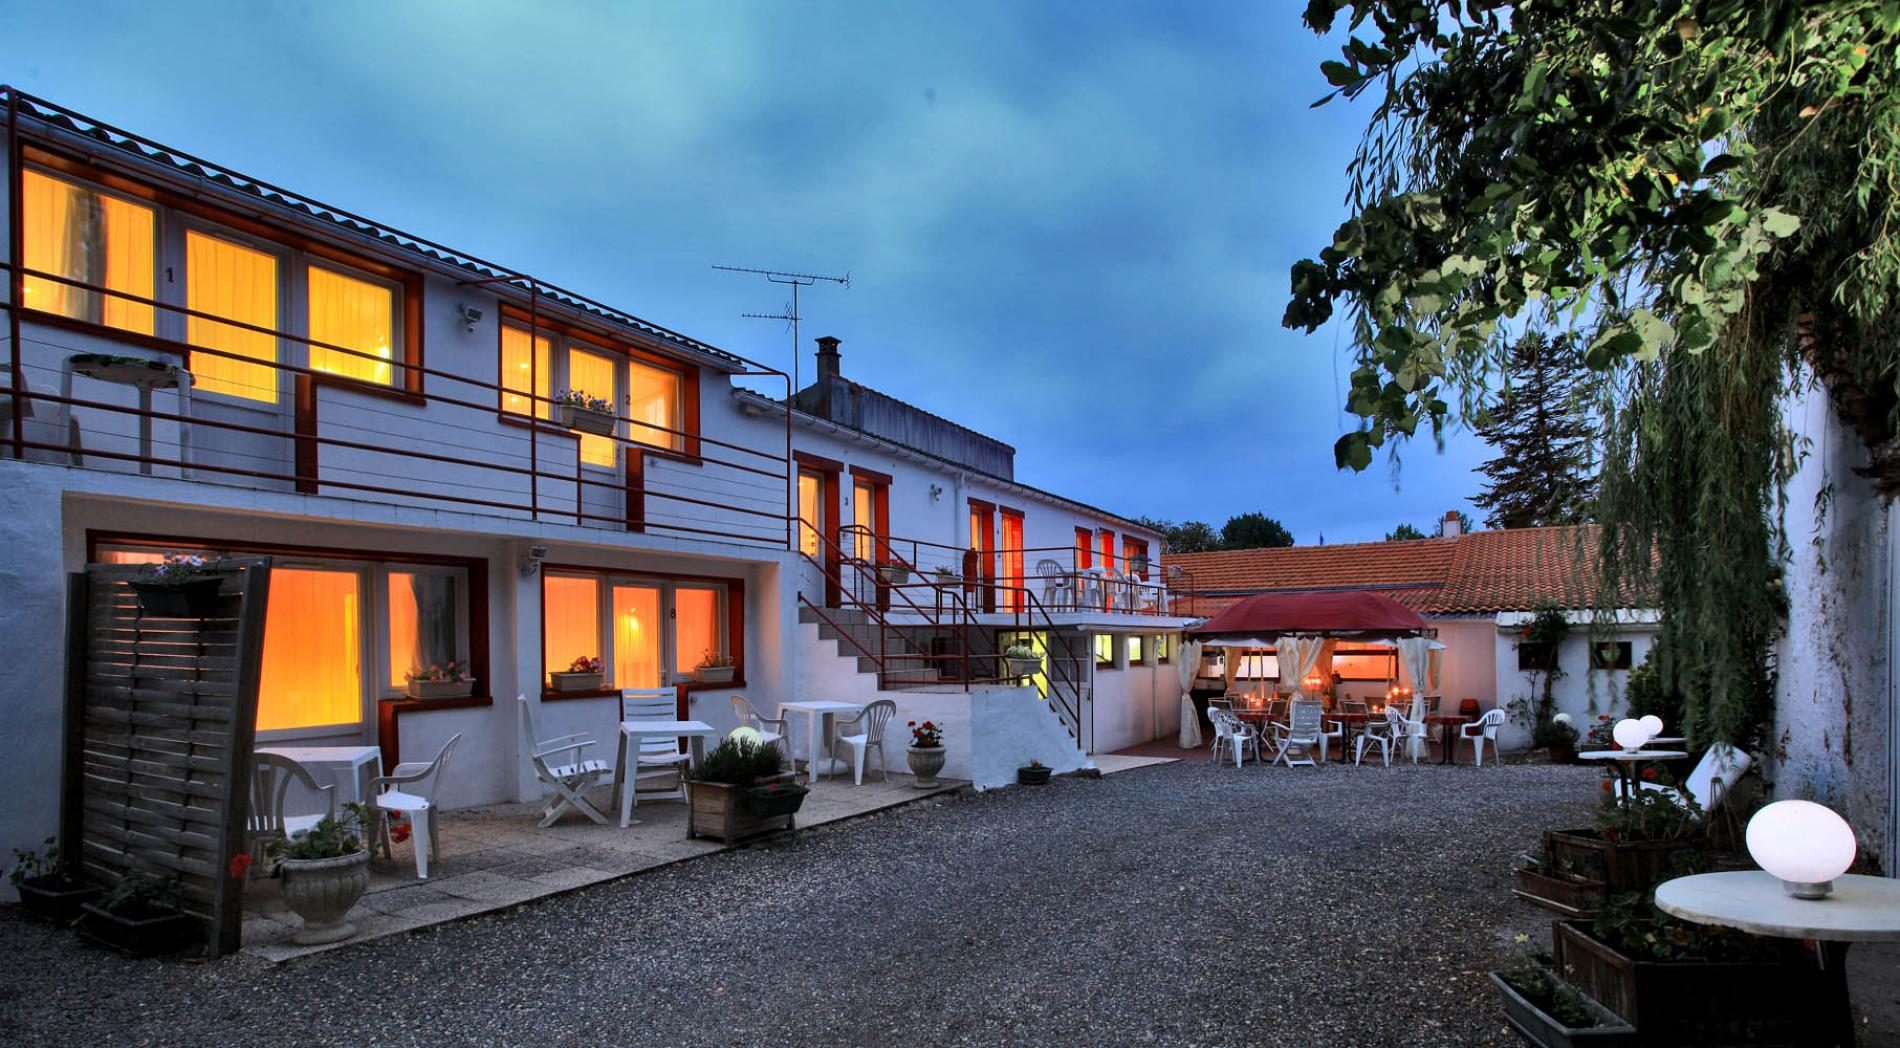 ∞Logis hotel Auberge Le Marais between Challans and Beauvoir sur Mer